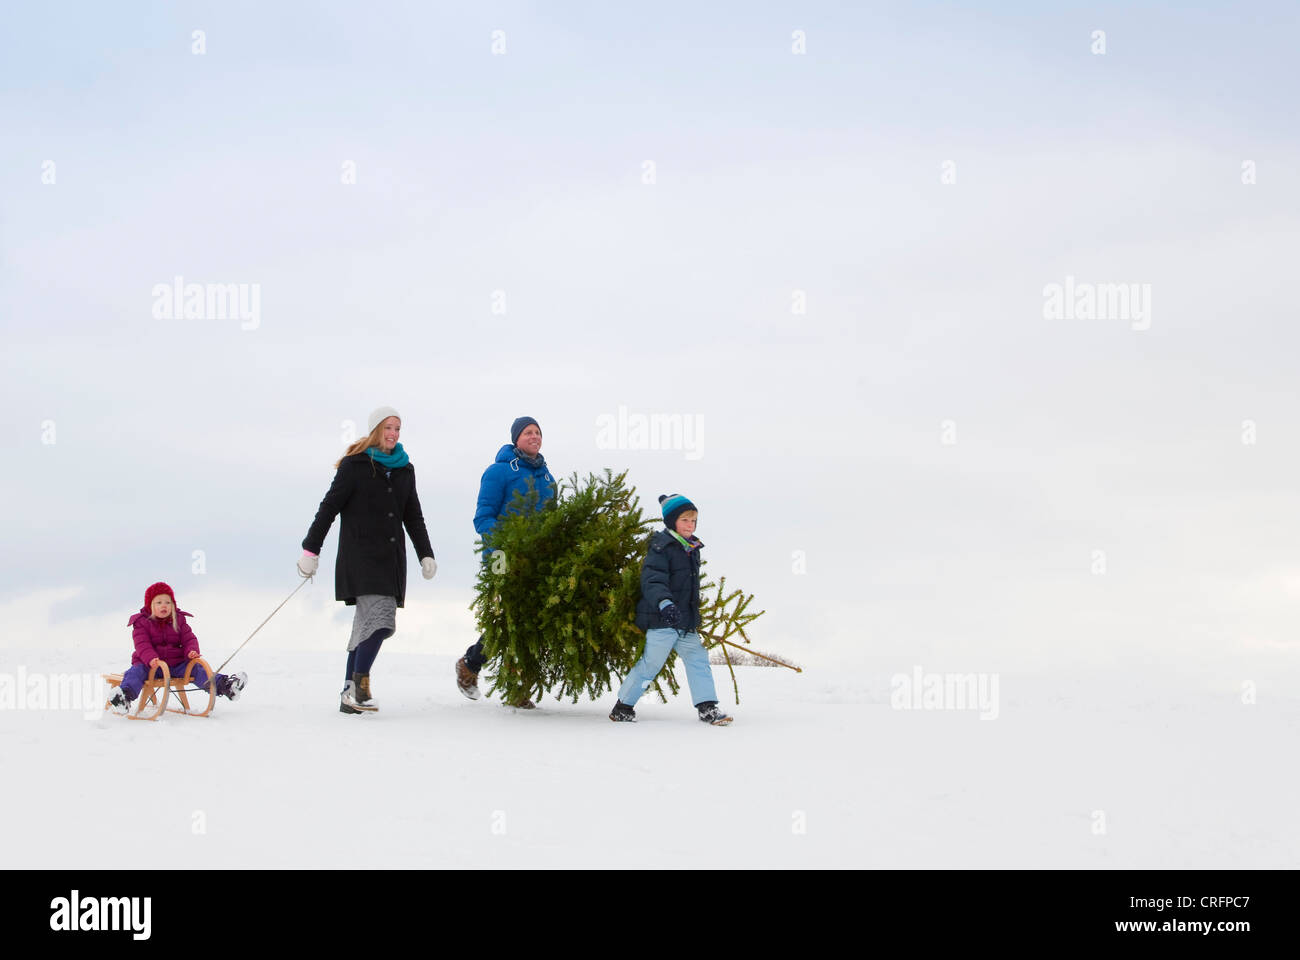 Family walking together in snow - Stock Image